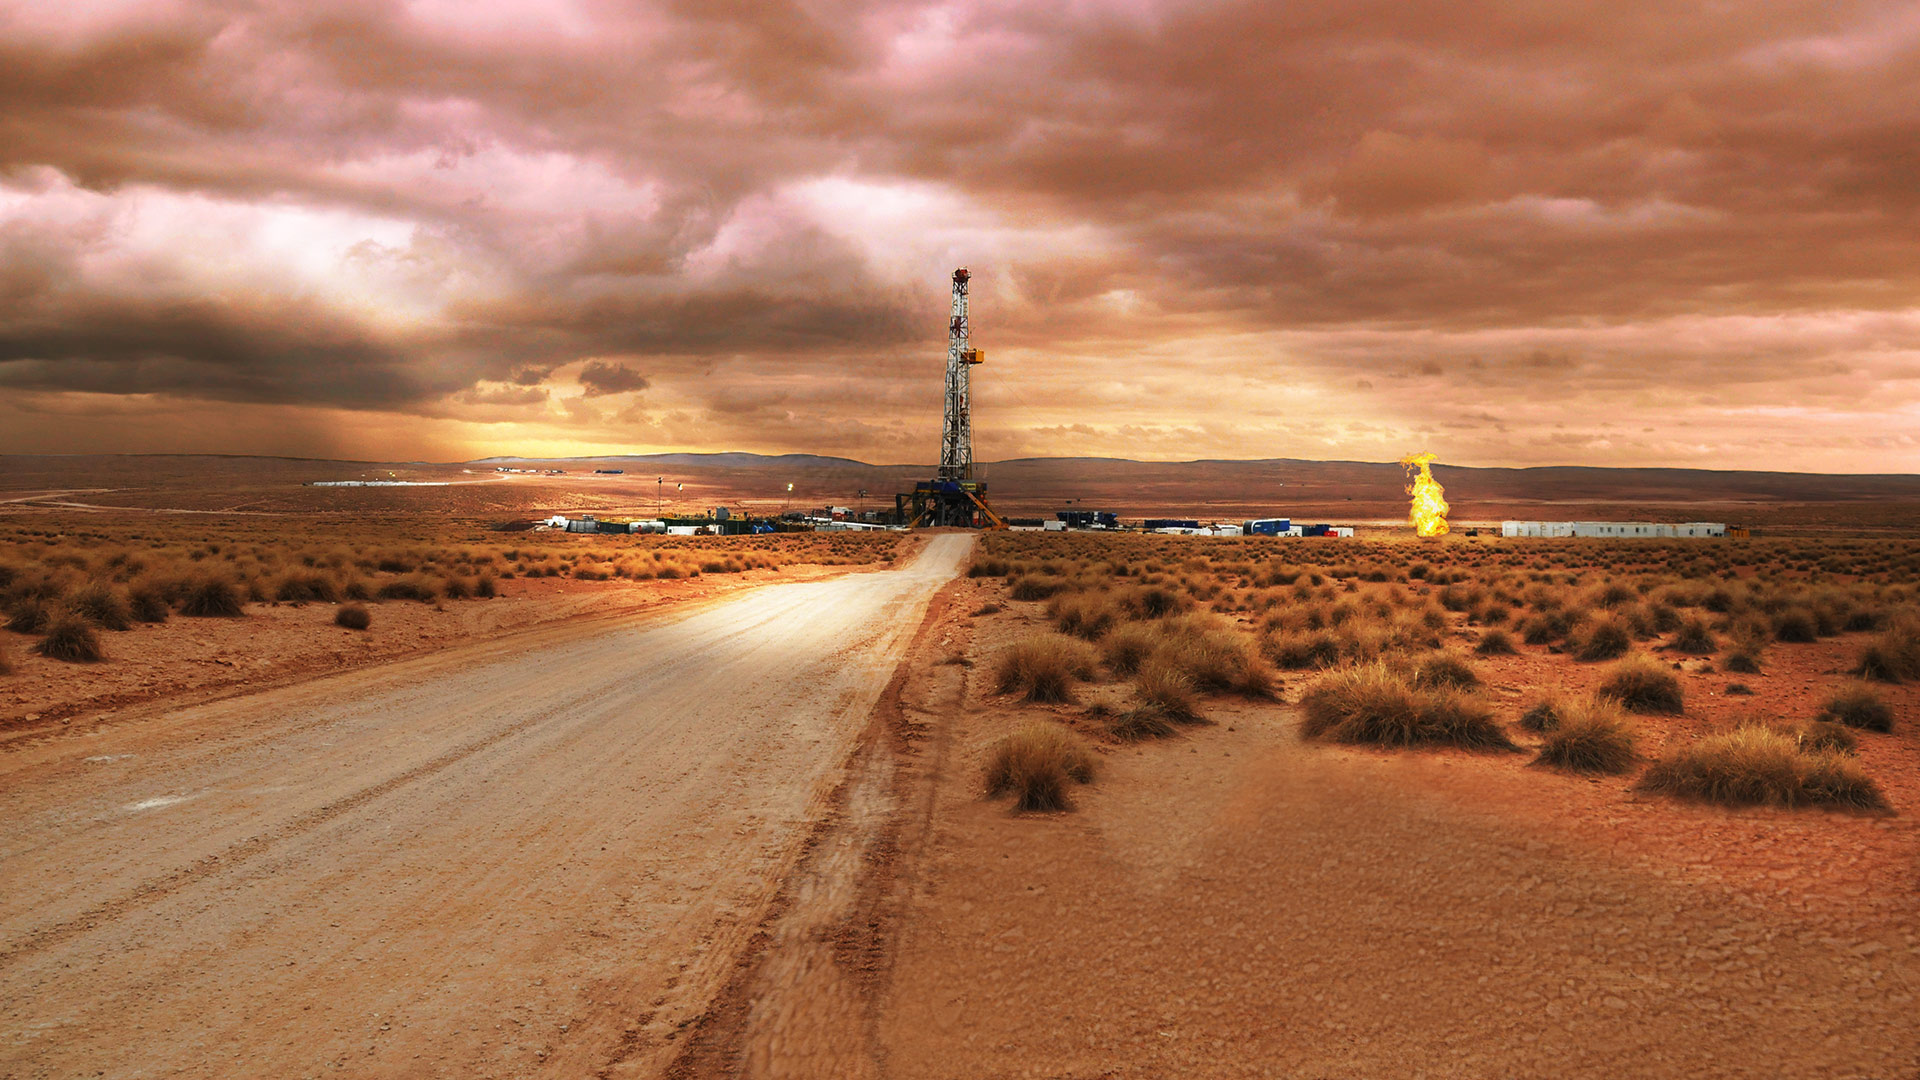 Drilling rig at end of a dusty road, with orange sky